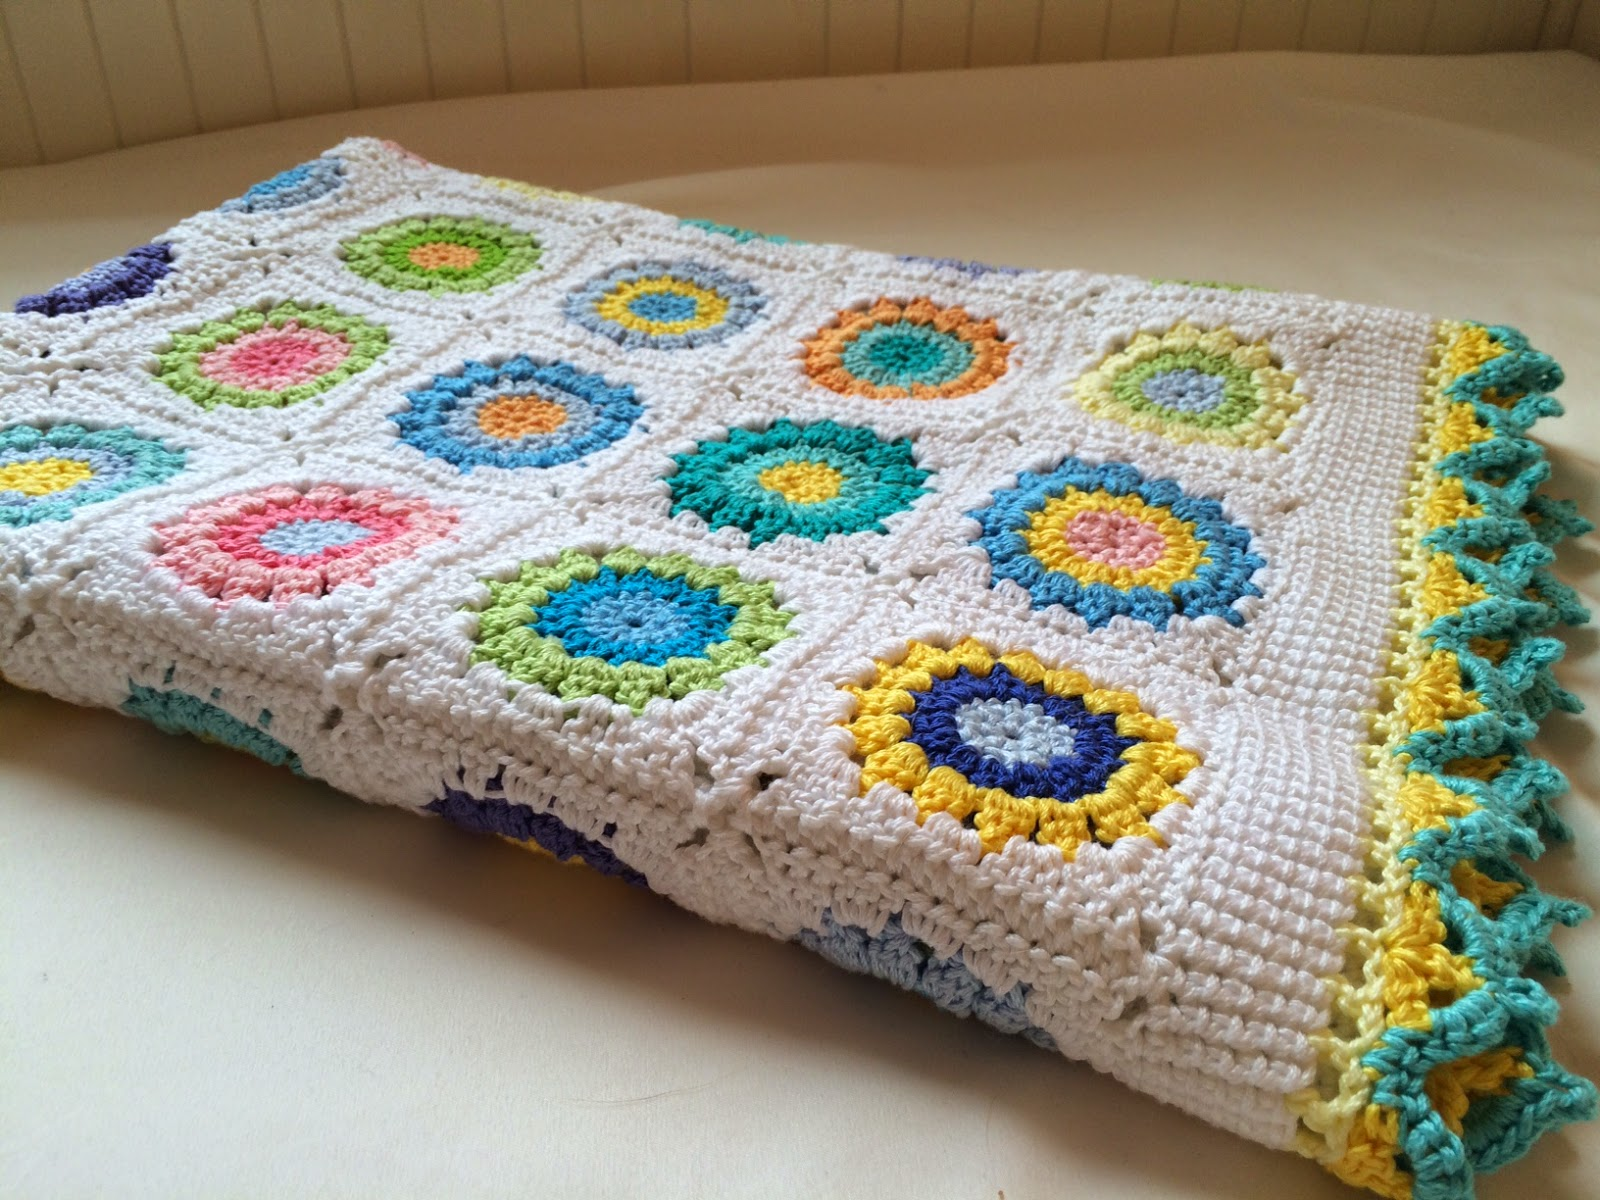 Prayer Blankets bring comfort, peace and courage from the Holy Spirit